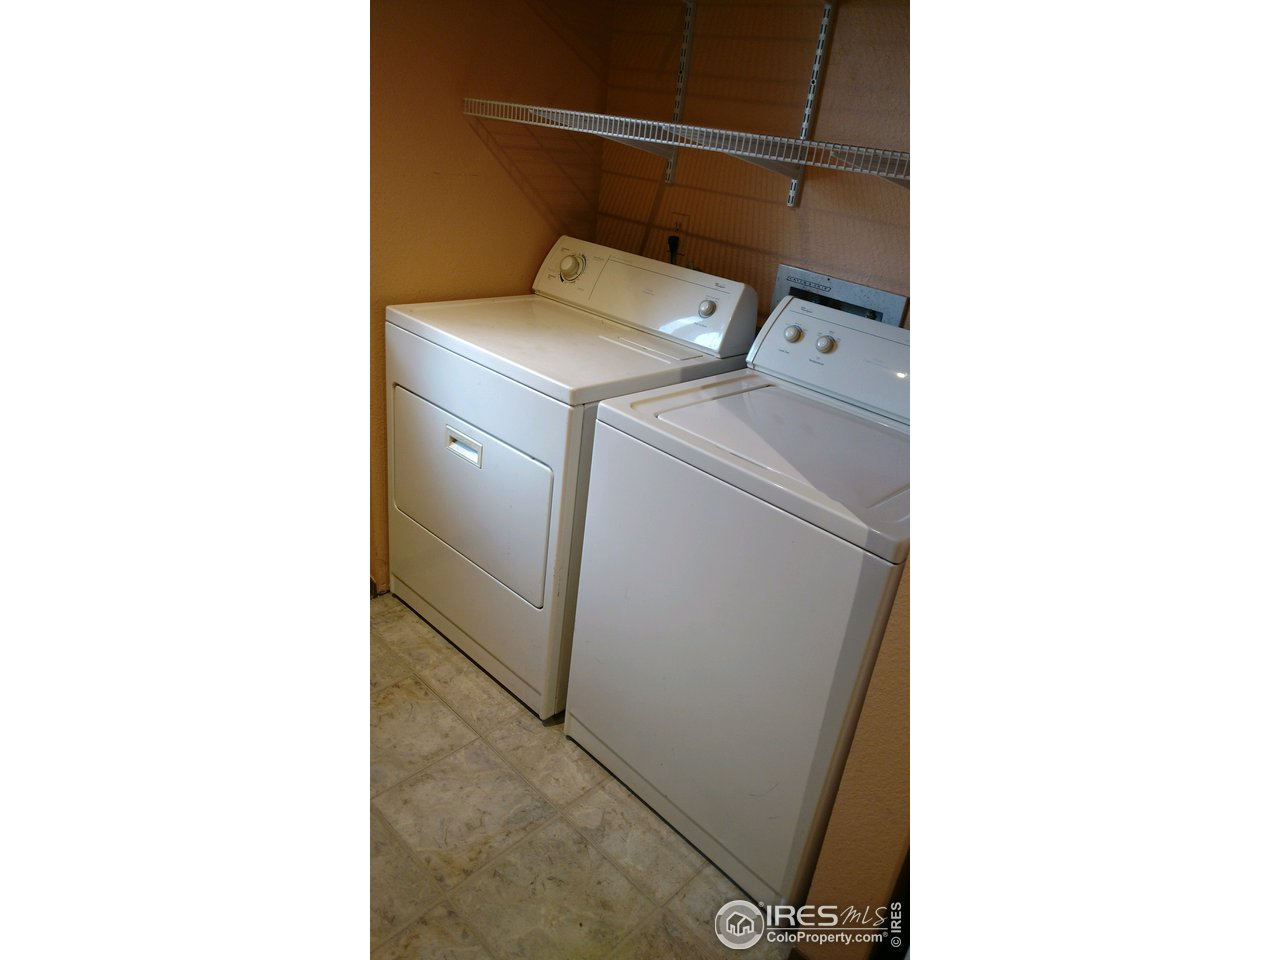 Clothes Washer and Dryer Included